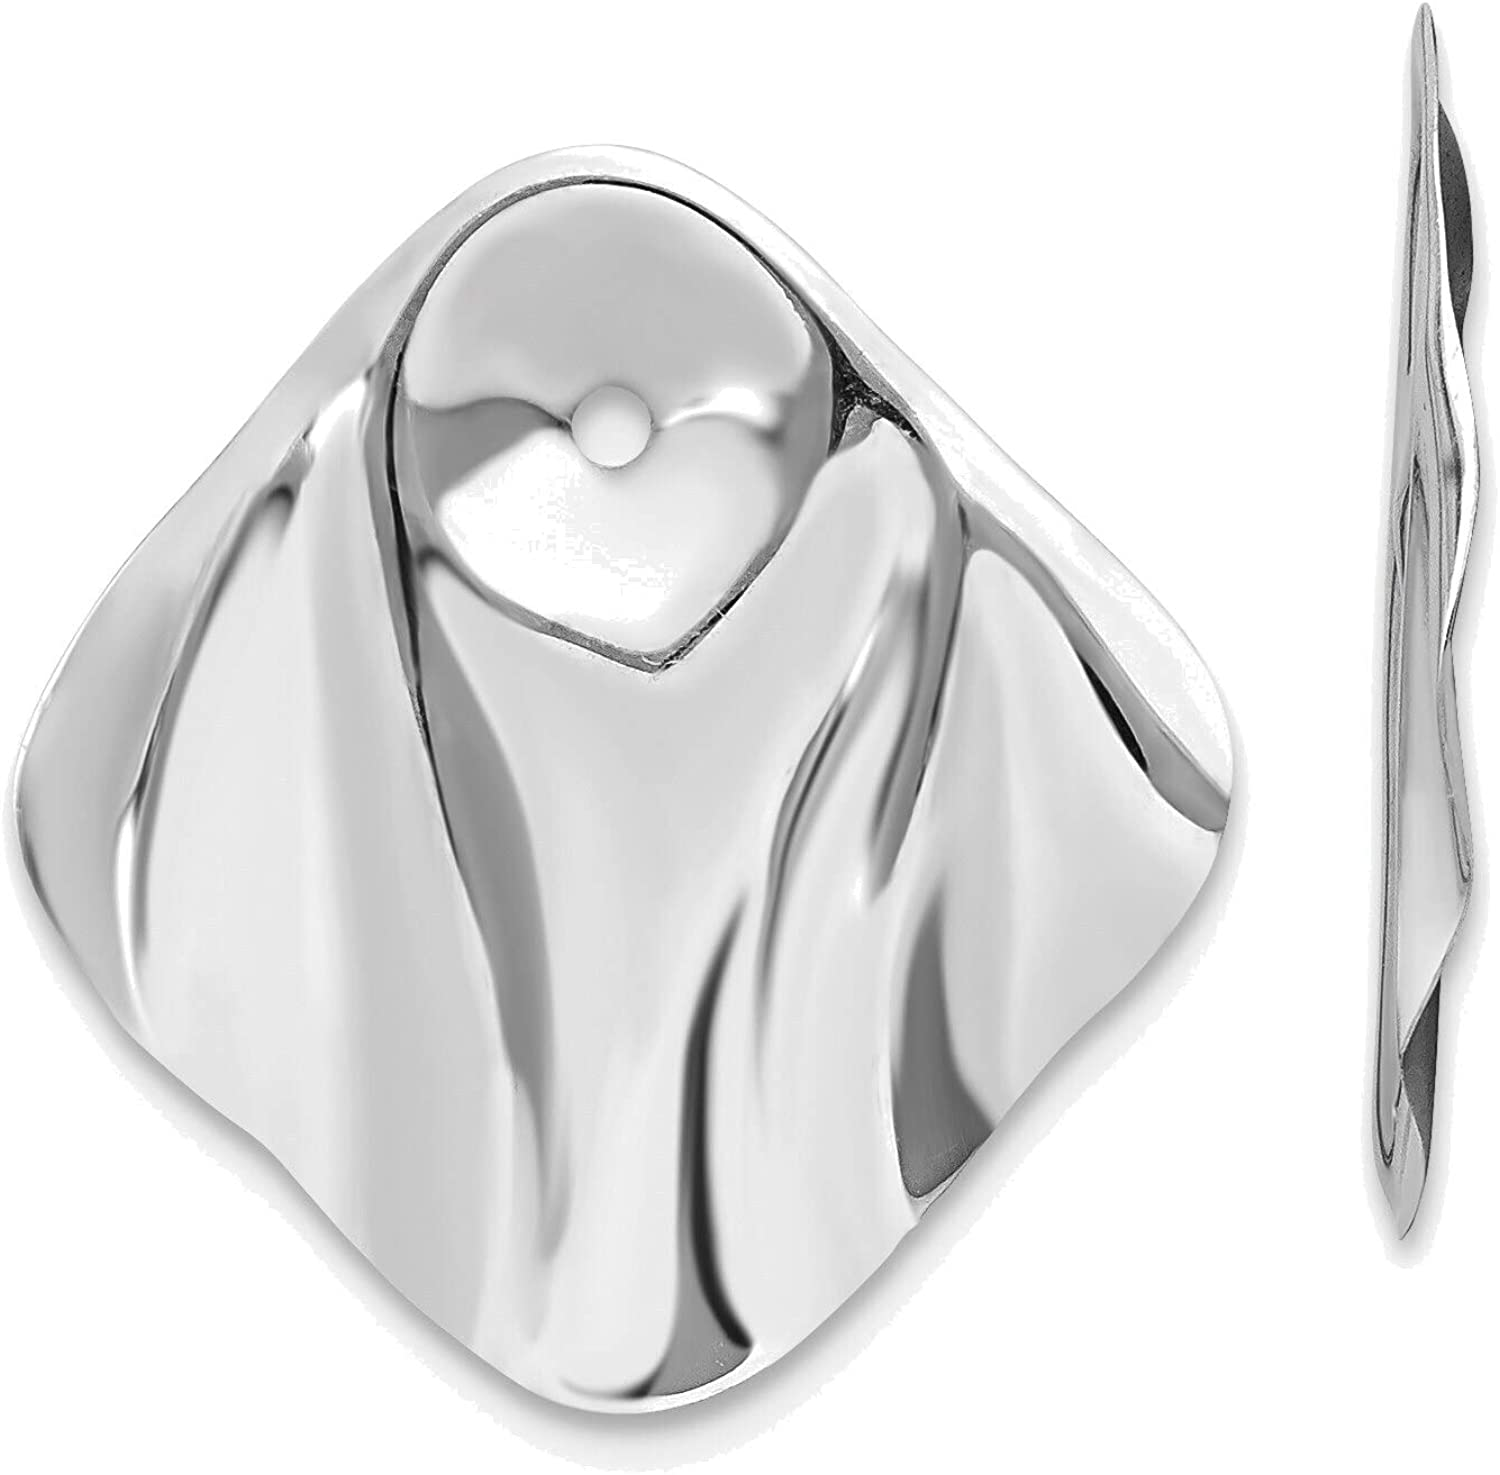 14kt White Gold Polished Hammered Square Earring Jackets